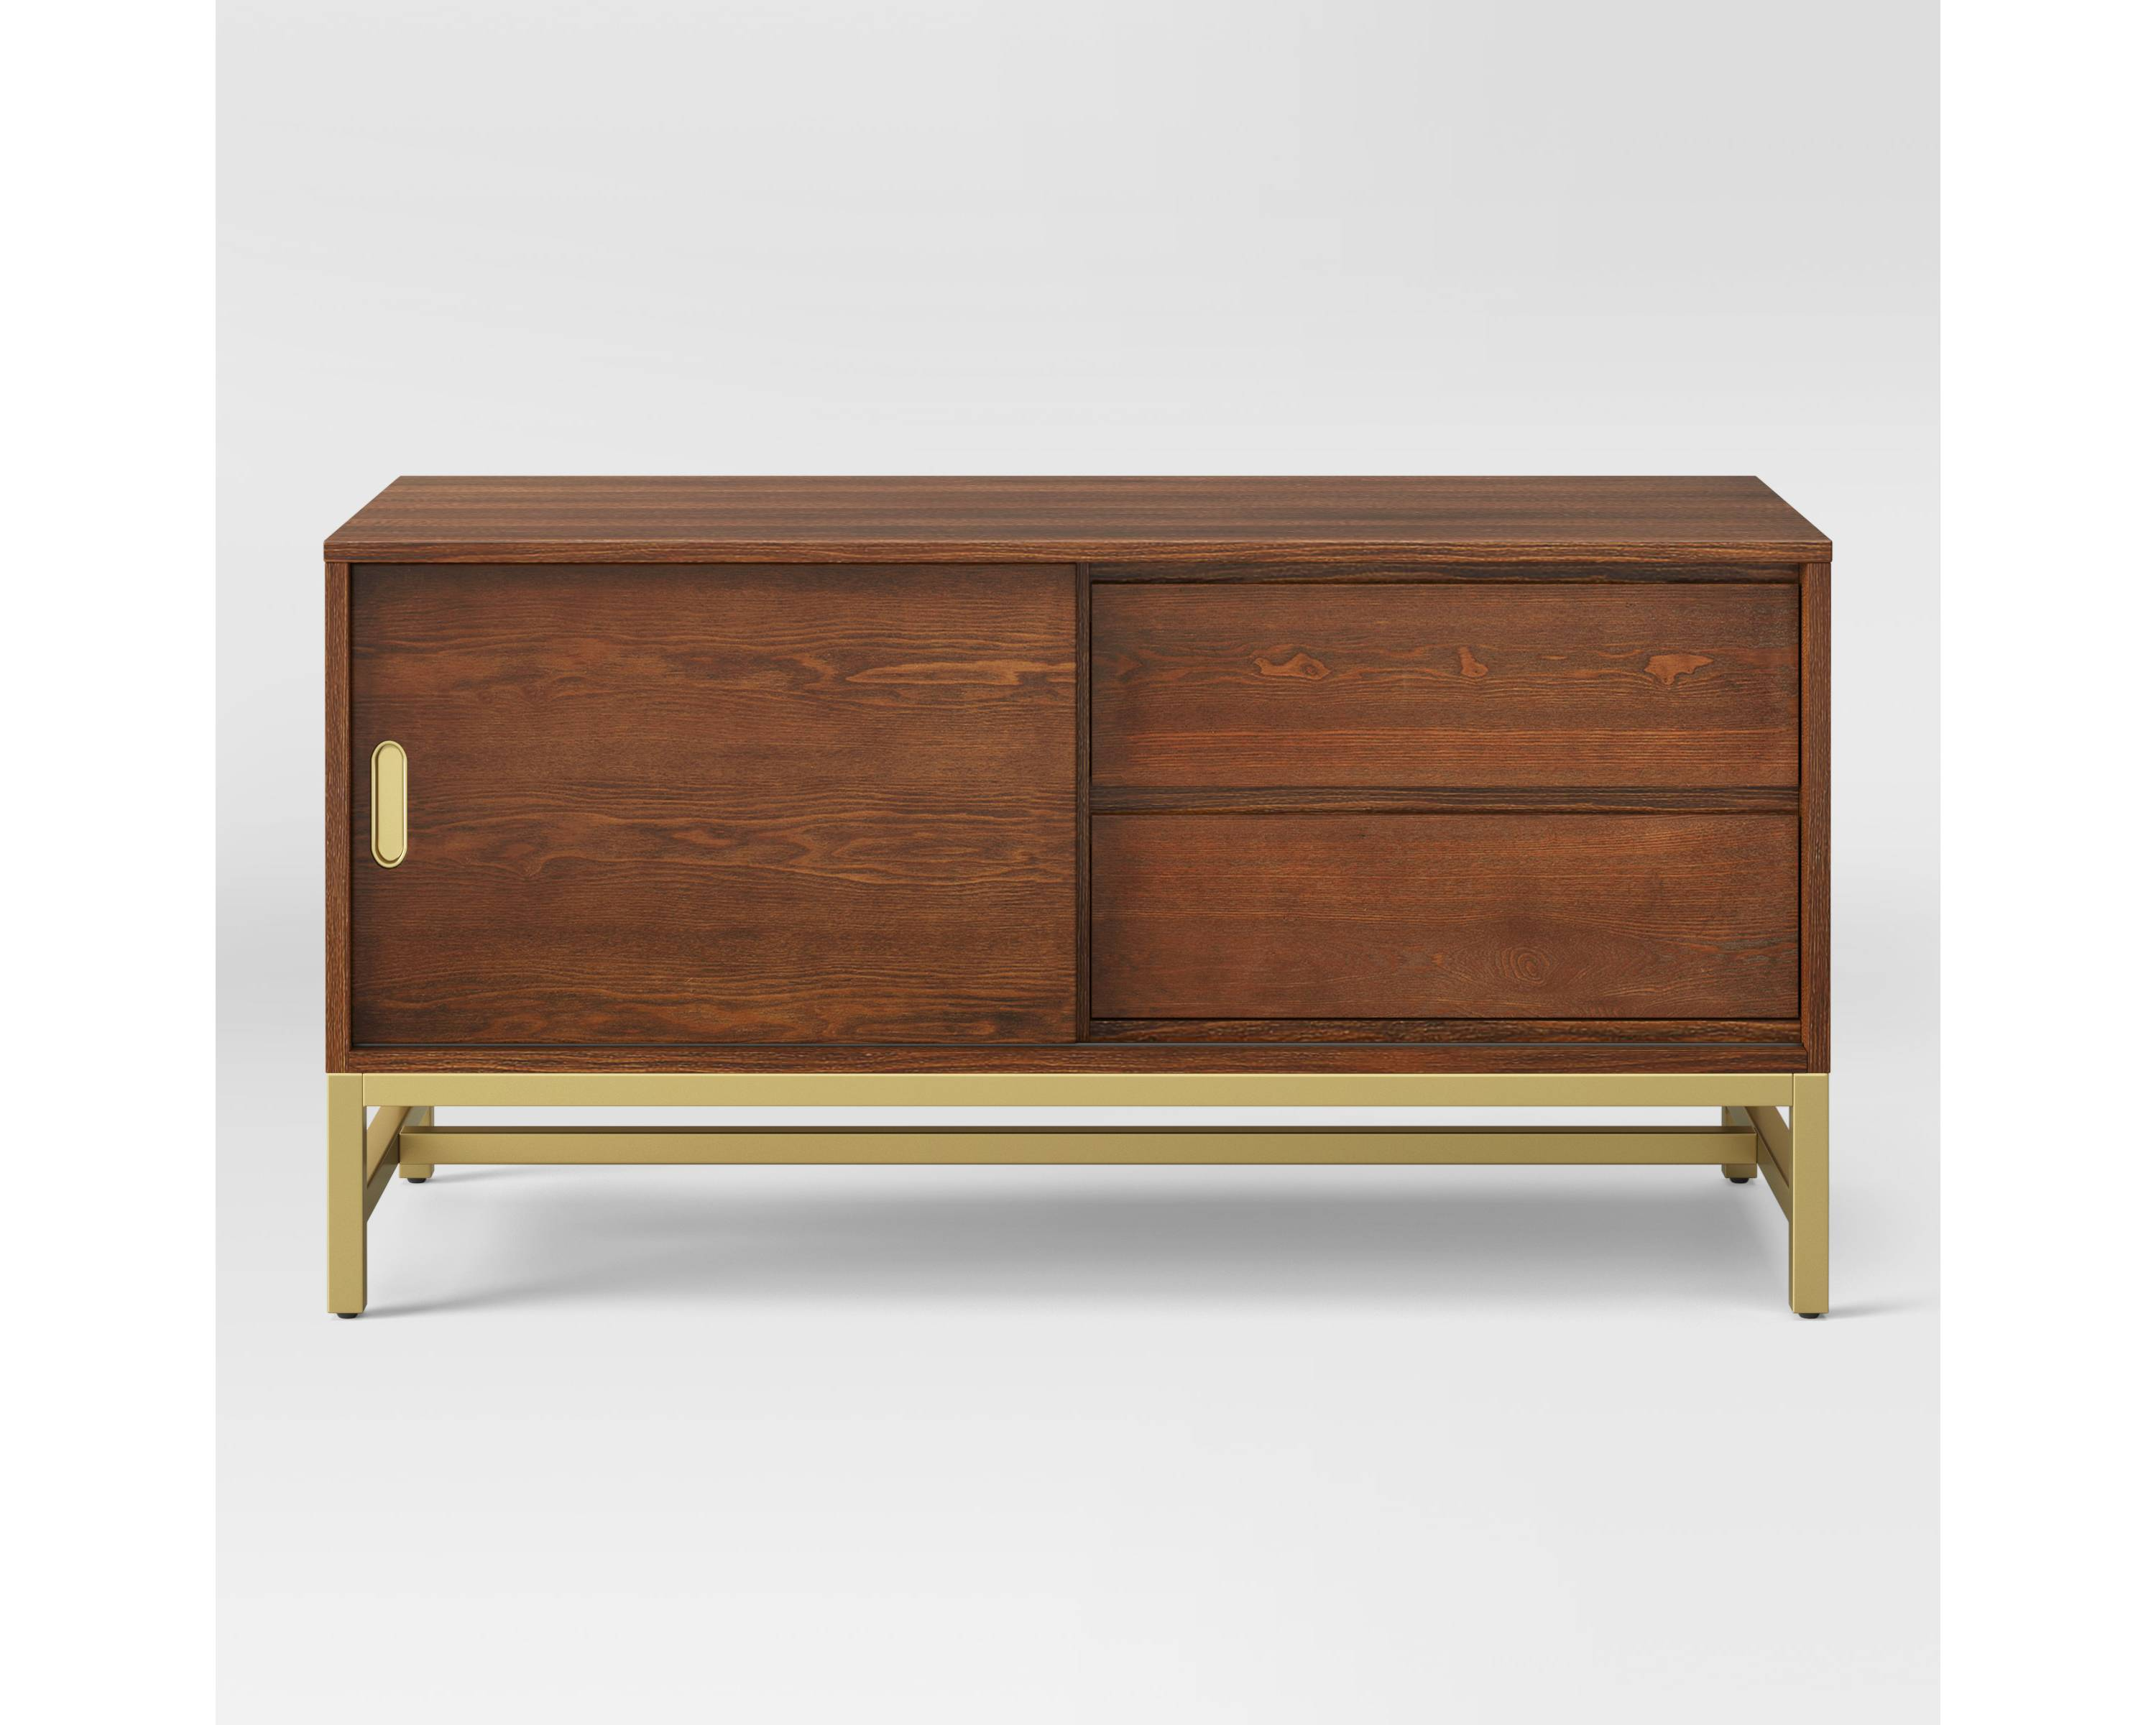 nesting target new project only looks expensive pulp credenza black accent table antwerp entertainment stand nate berkus gold side threshold drawer end with usb charger kohls